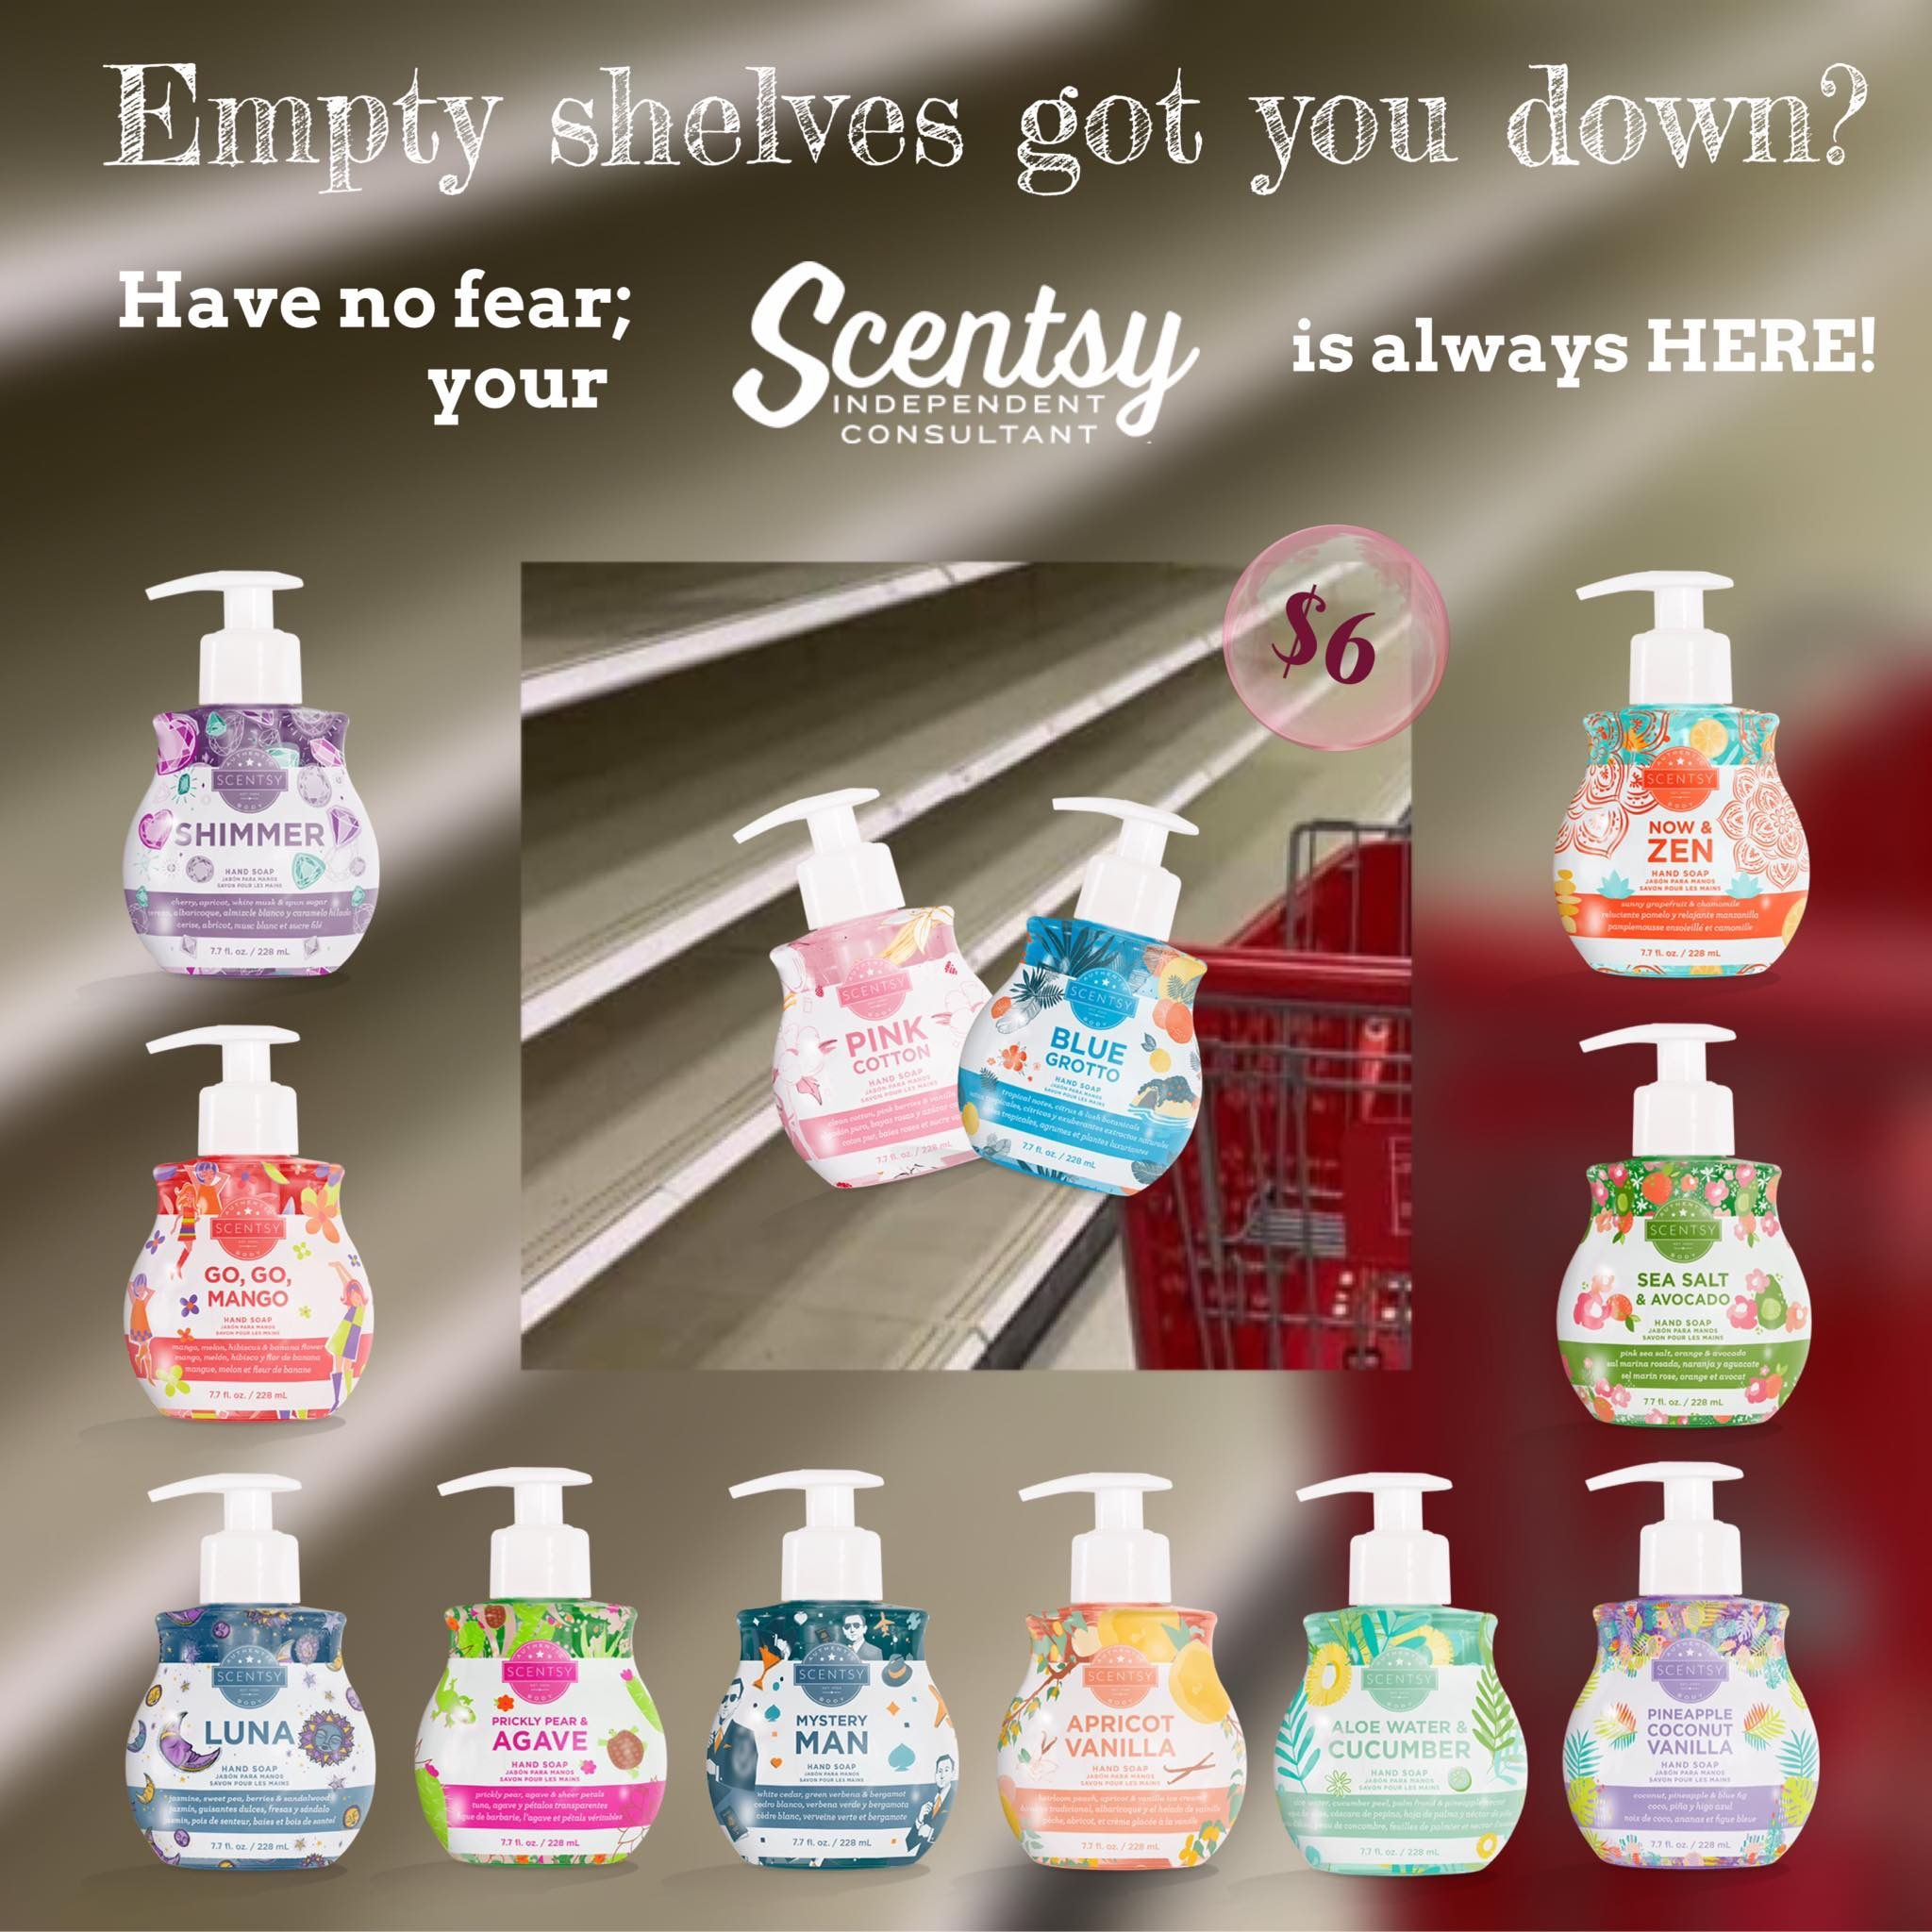 Pin by Ginger Kimpton on Scentsy in 2020 Scentsy, Soap